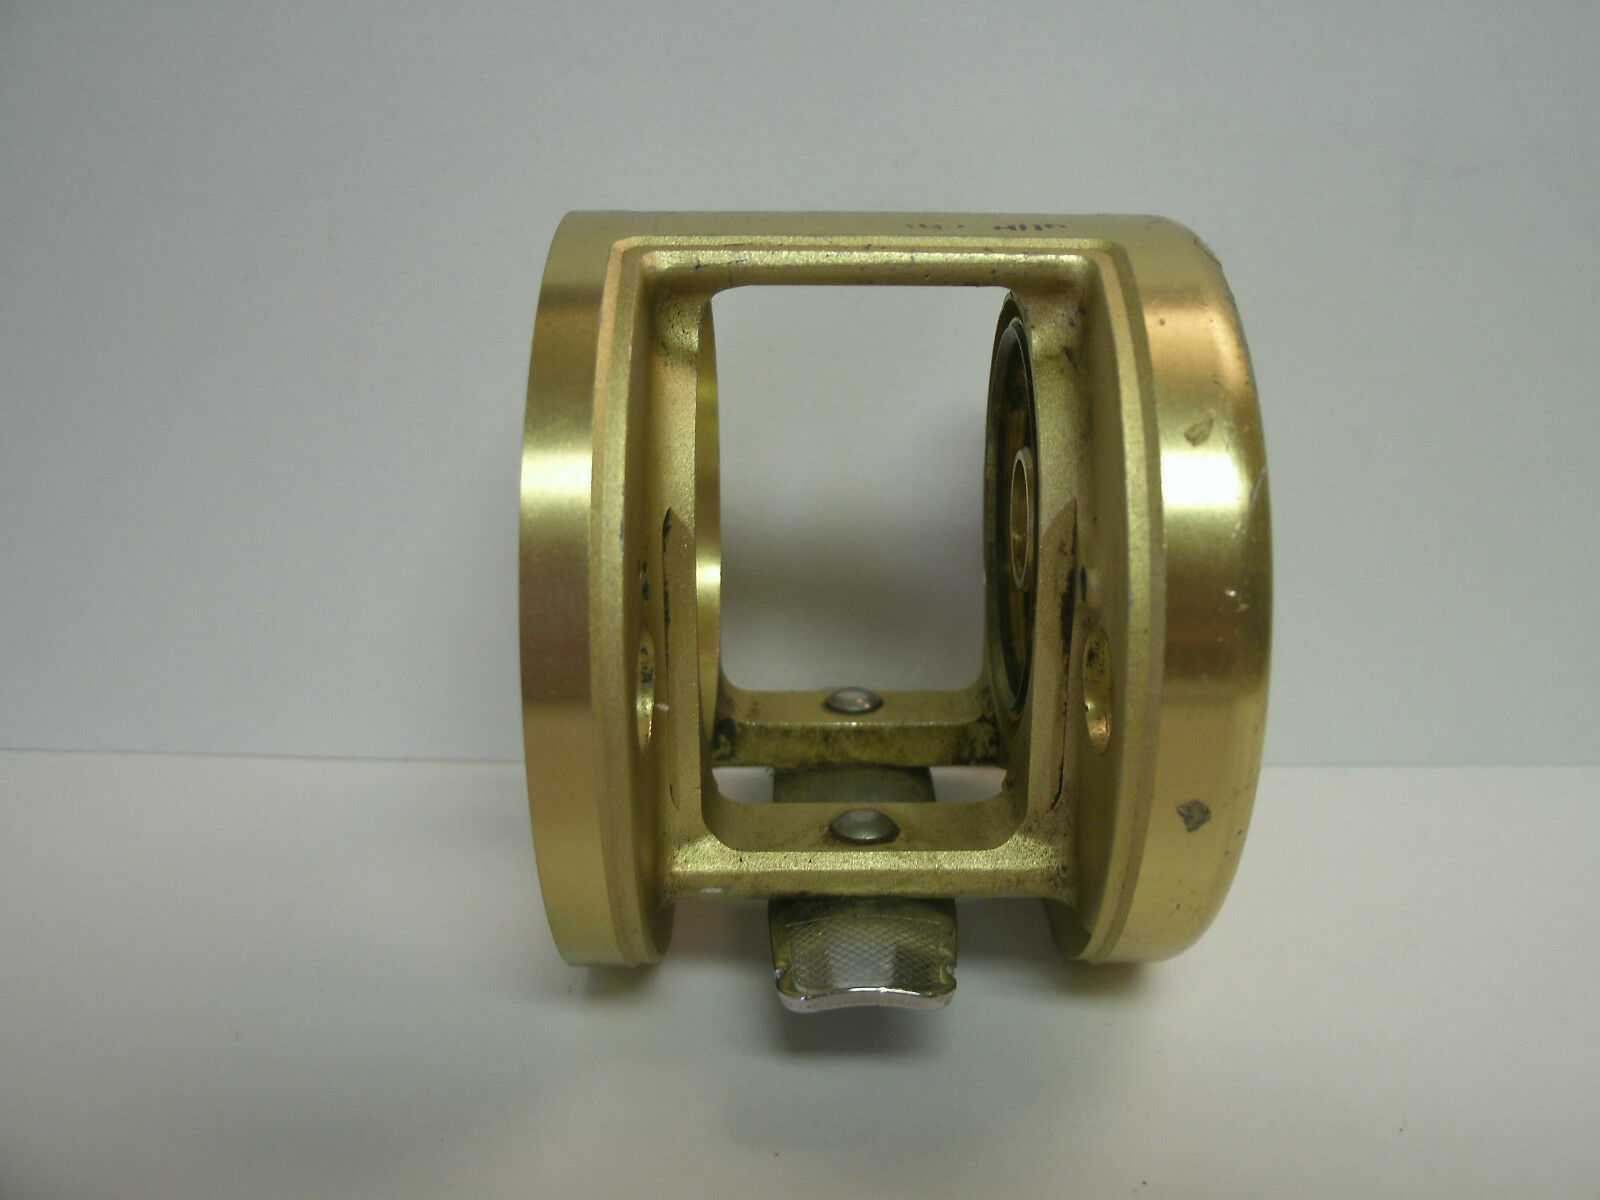 USED SHIMANO REEL PART Calcutta 200B Baitcasting Reel - Frame